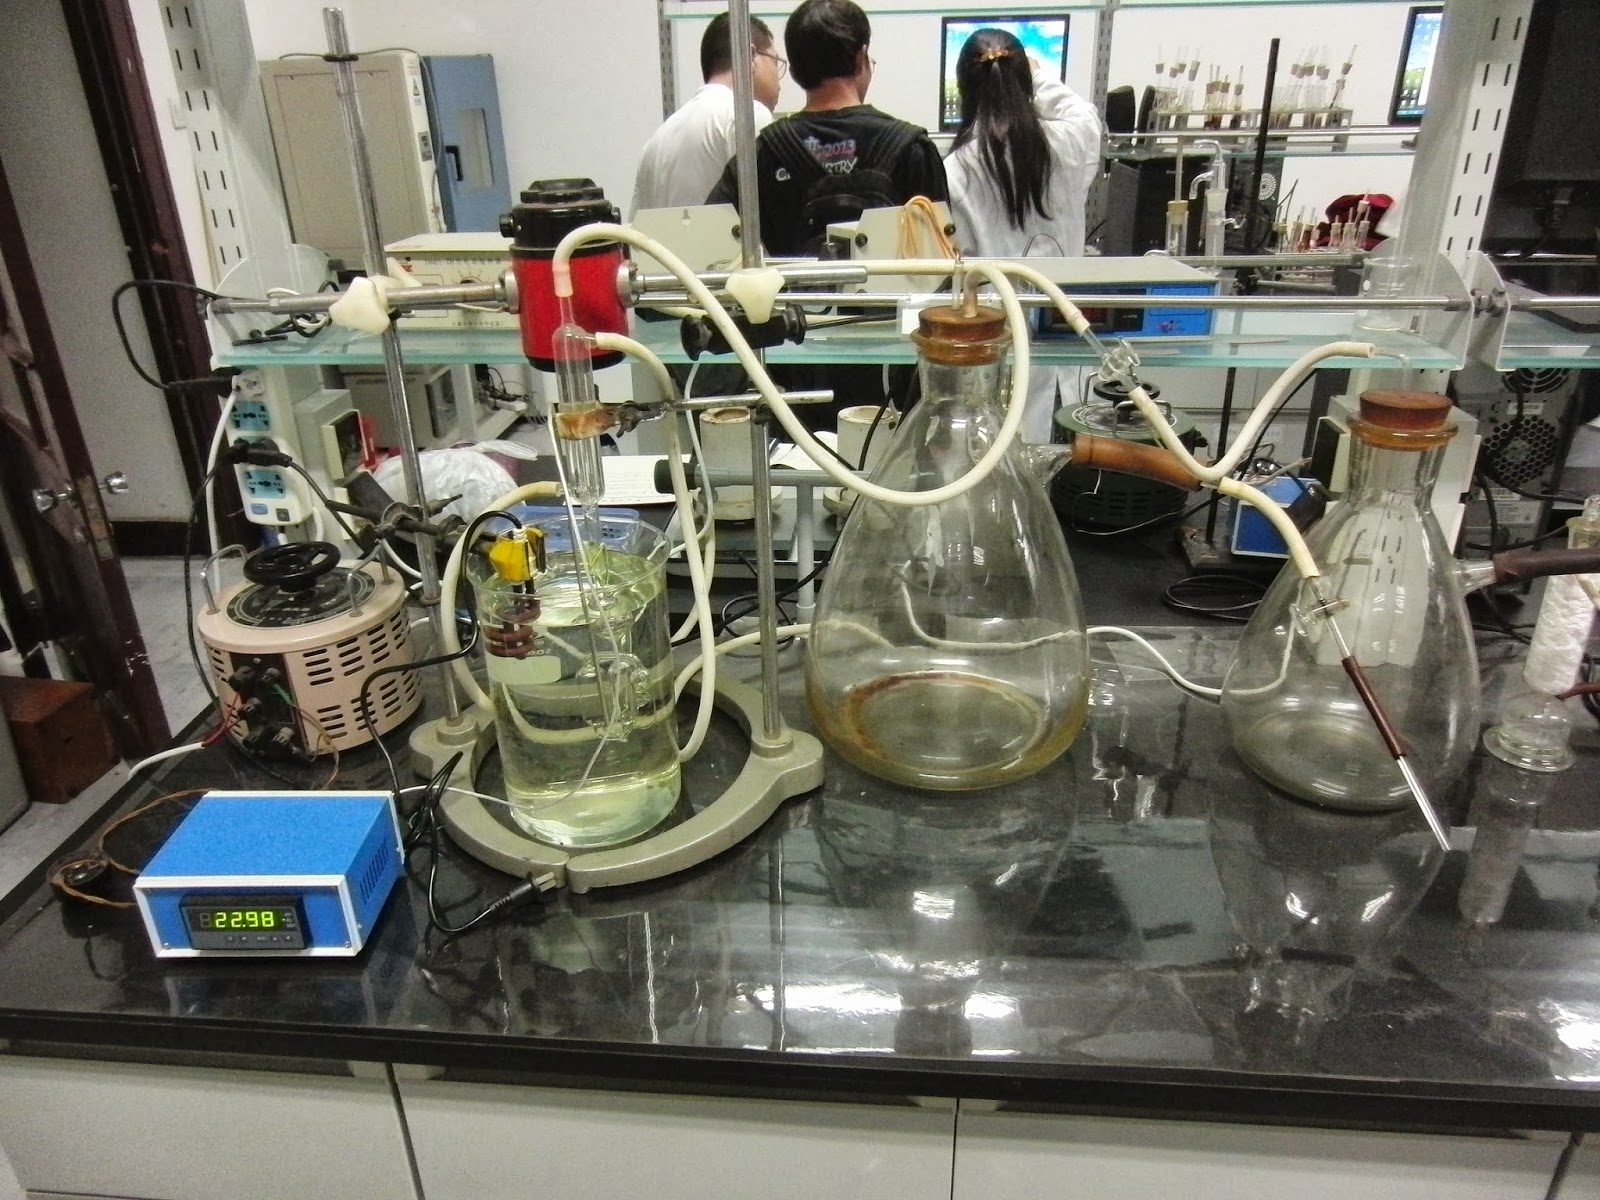 vapor pressure and enthalpy lab This week in lab you will fit a set of vapor pressure vs temperature data to the clausius- clapeyron equation to determine the heat of vaporization of an unknown liquid, shown in figure 4.